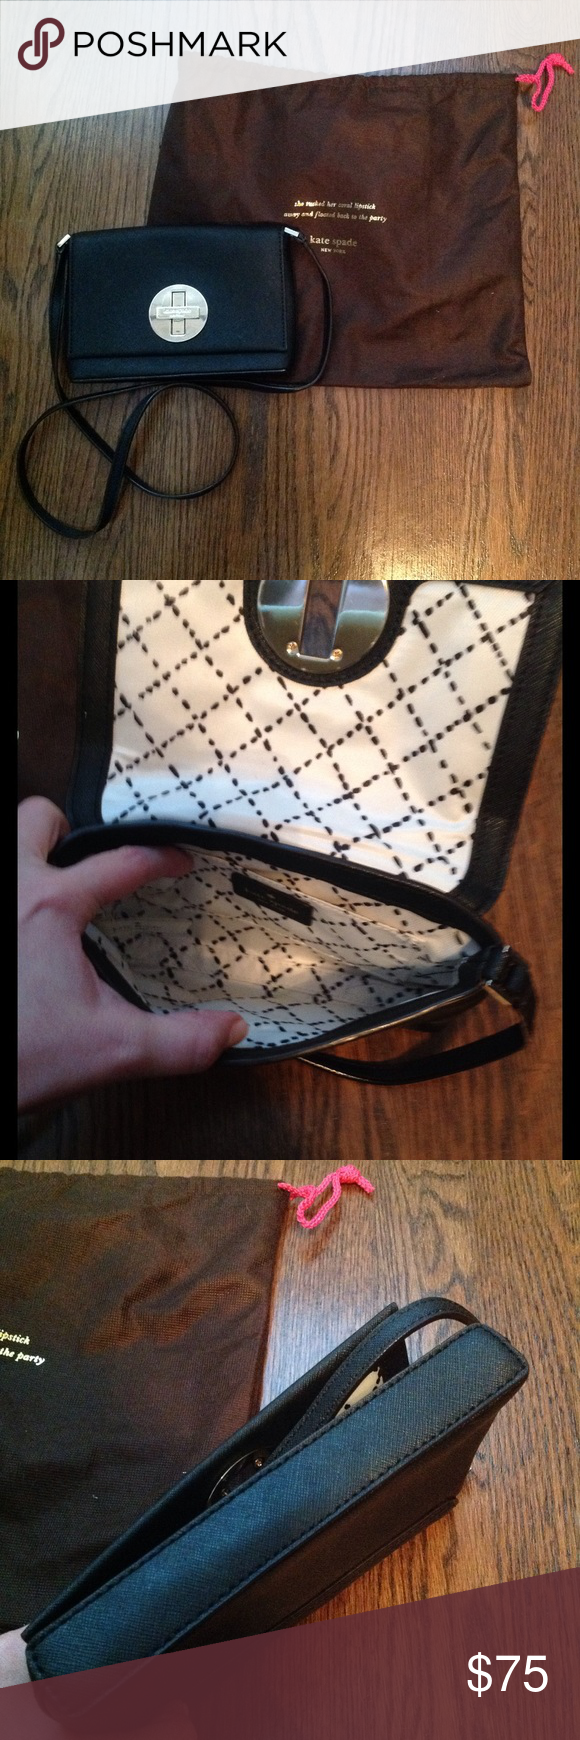 Kate Spade Black Crossbody Bag Great for travel and near perfect condition! Dust bag included. kate spade Bags Crossbody Bags